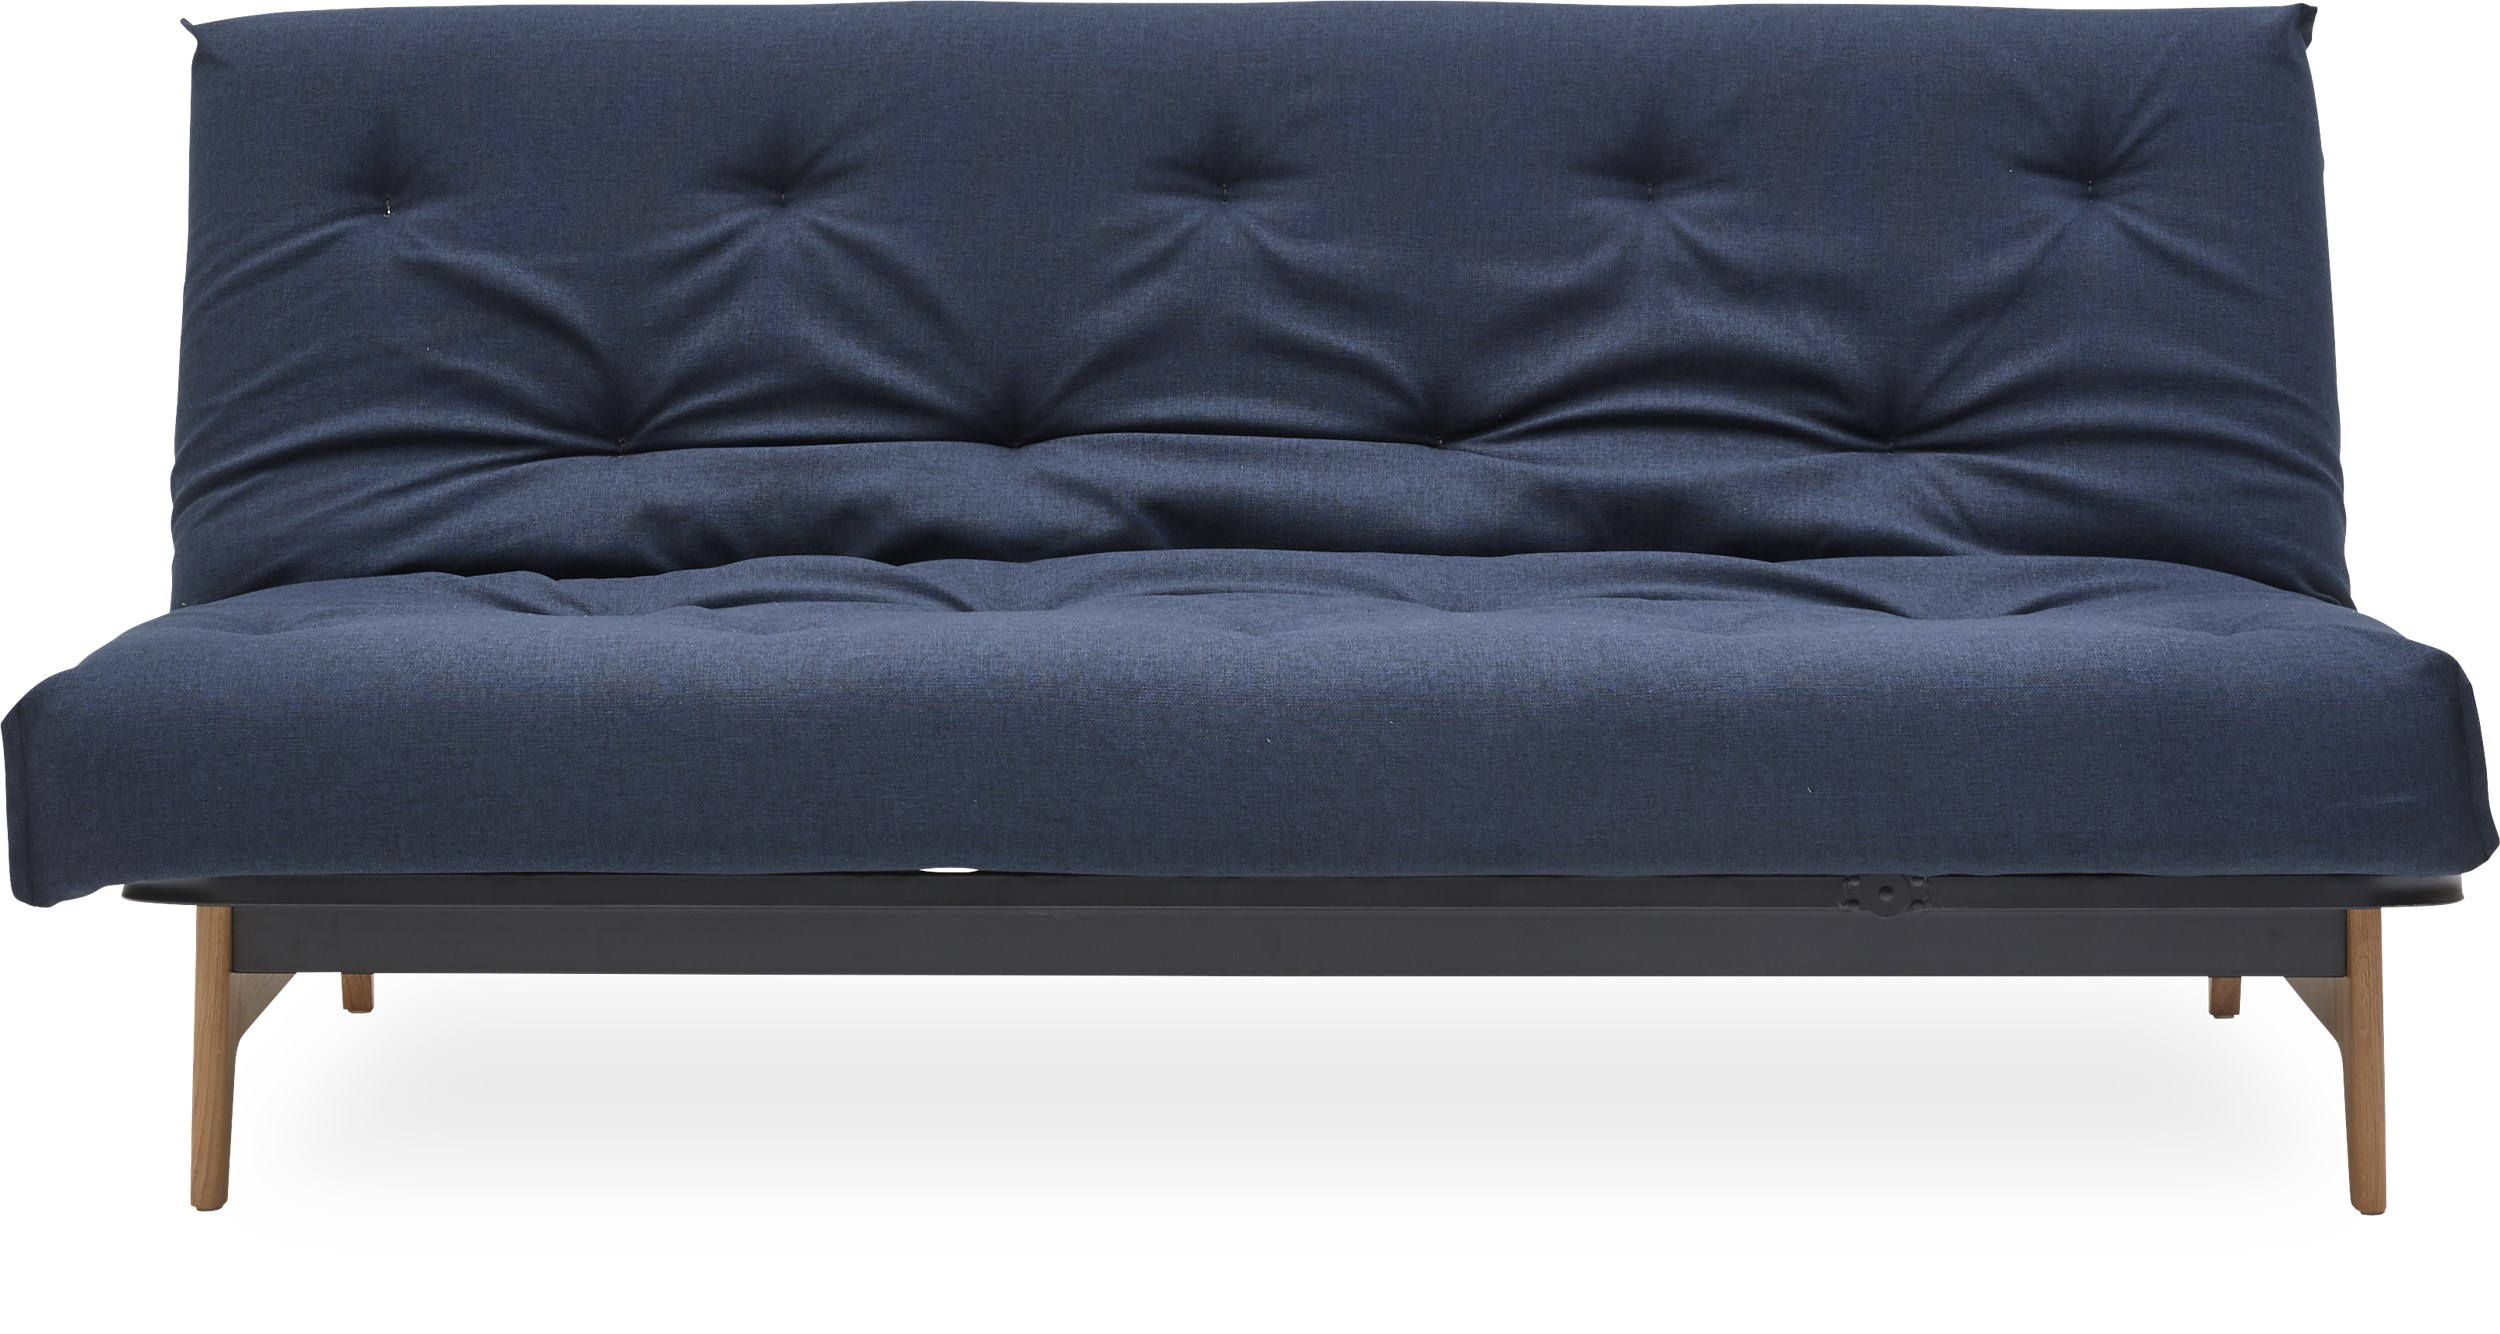 Innovation Living - Aslak Soft Spring Nordic Sovesofa - Sovesofa